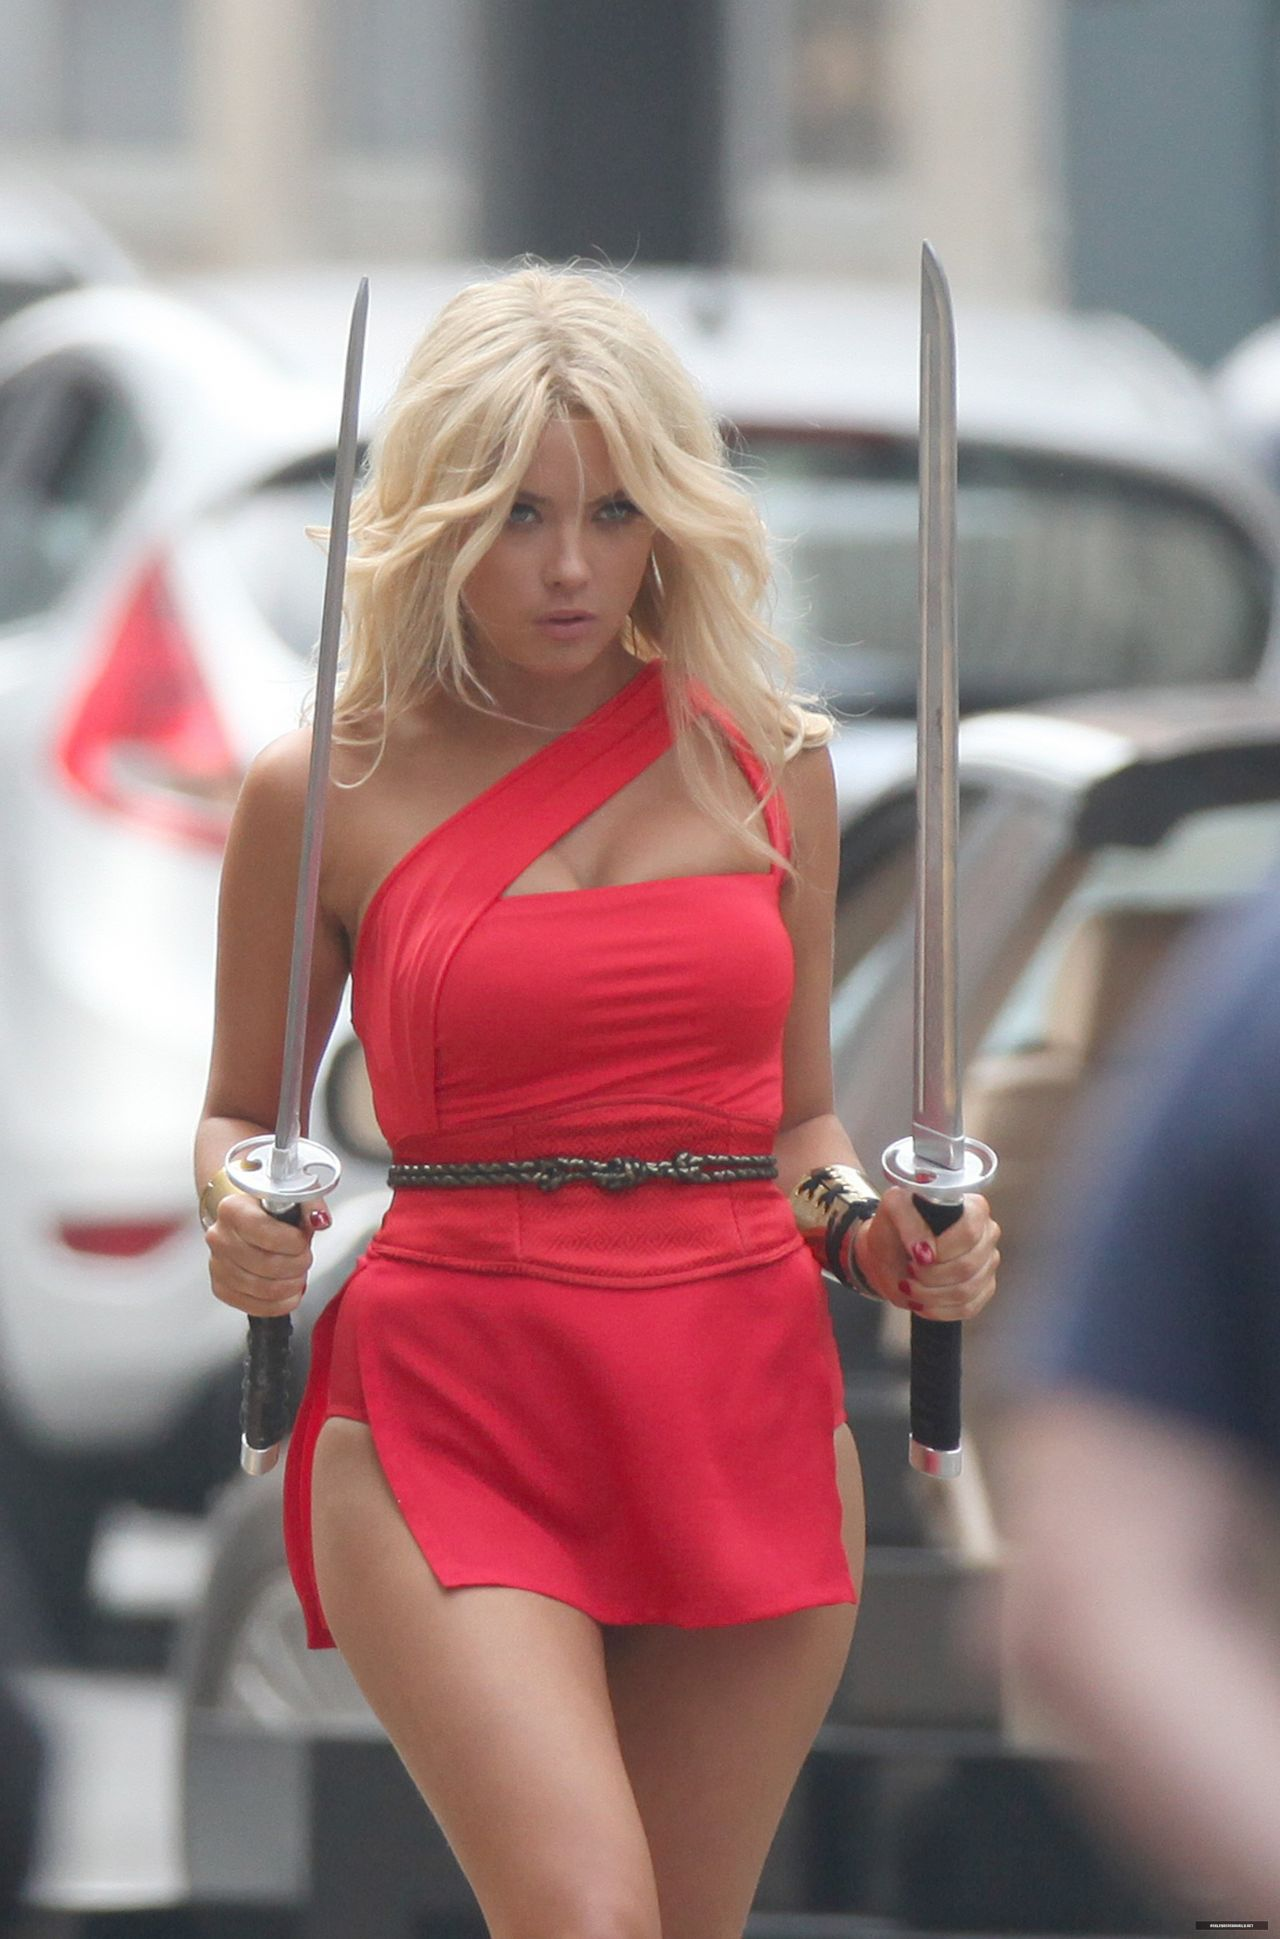 ashley benson pixels Ashley Benson – 'Pixels' Set Photos – August 2014